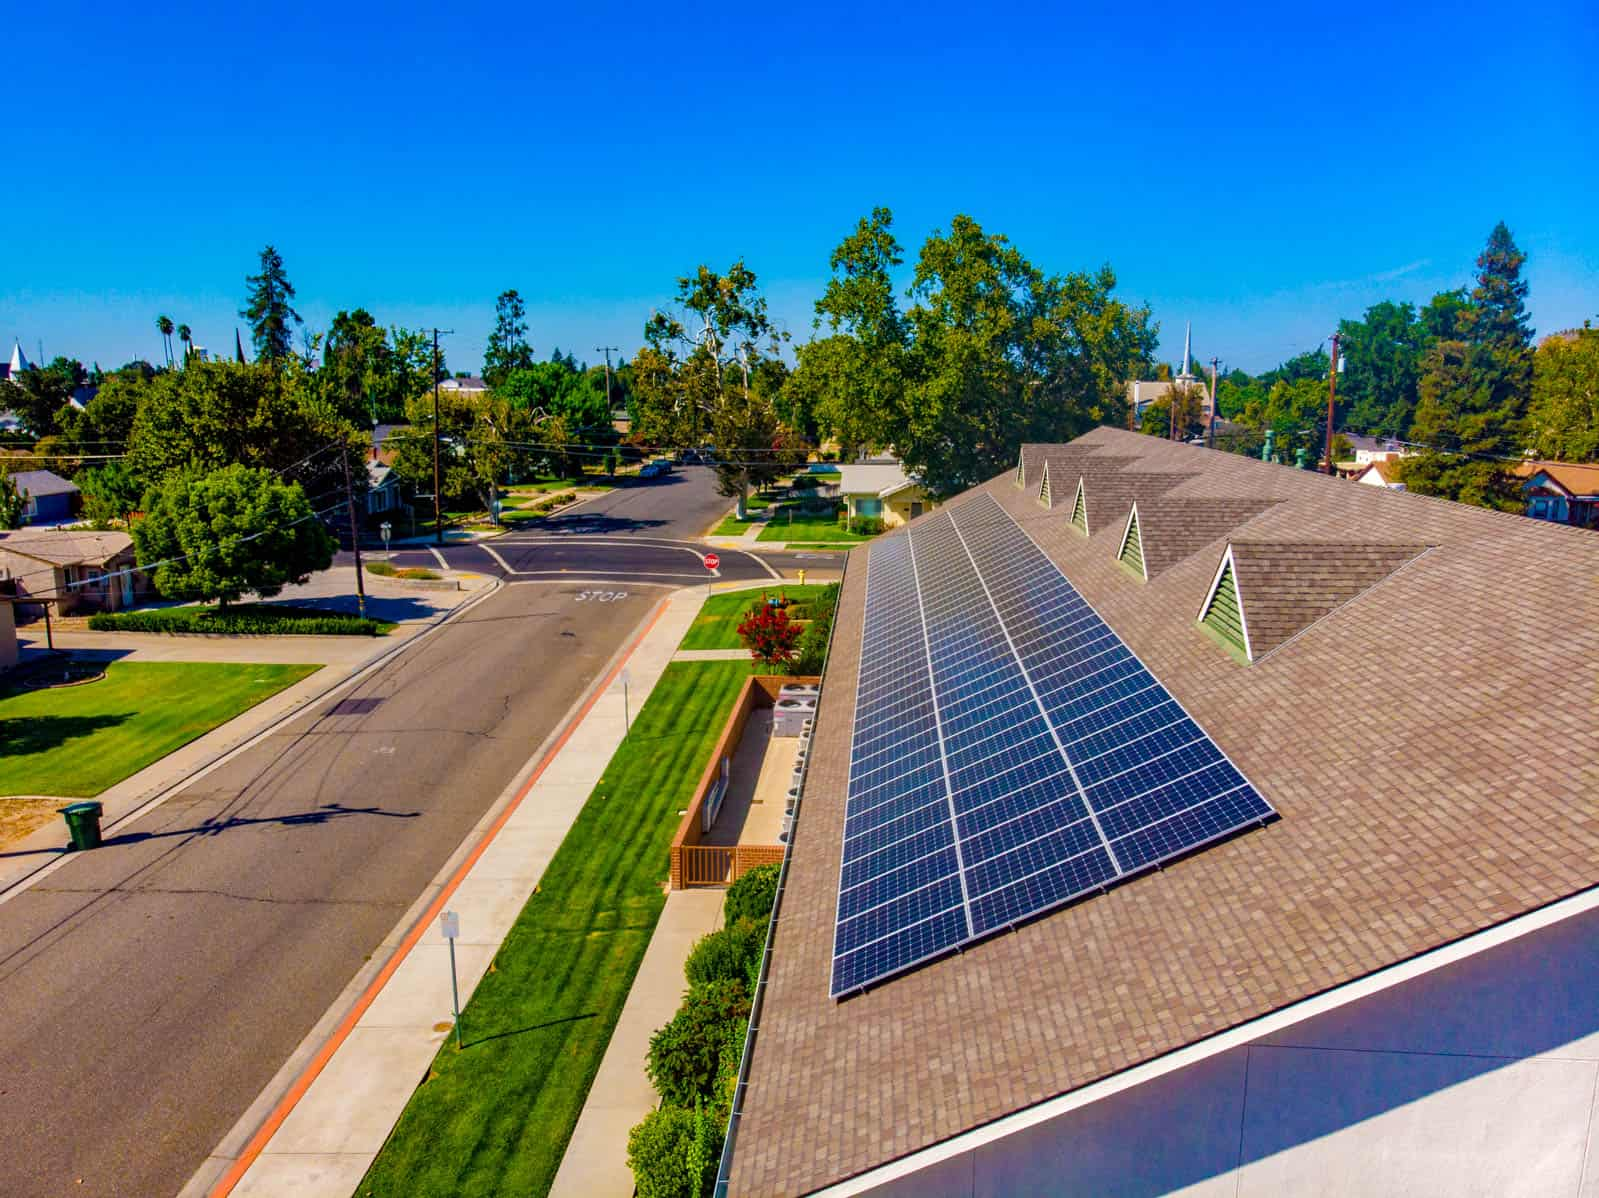 aerial drone photo of large solar panel array installed on rooftop of building in California